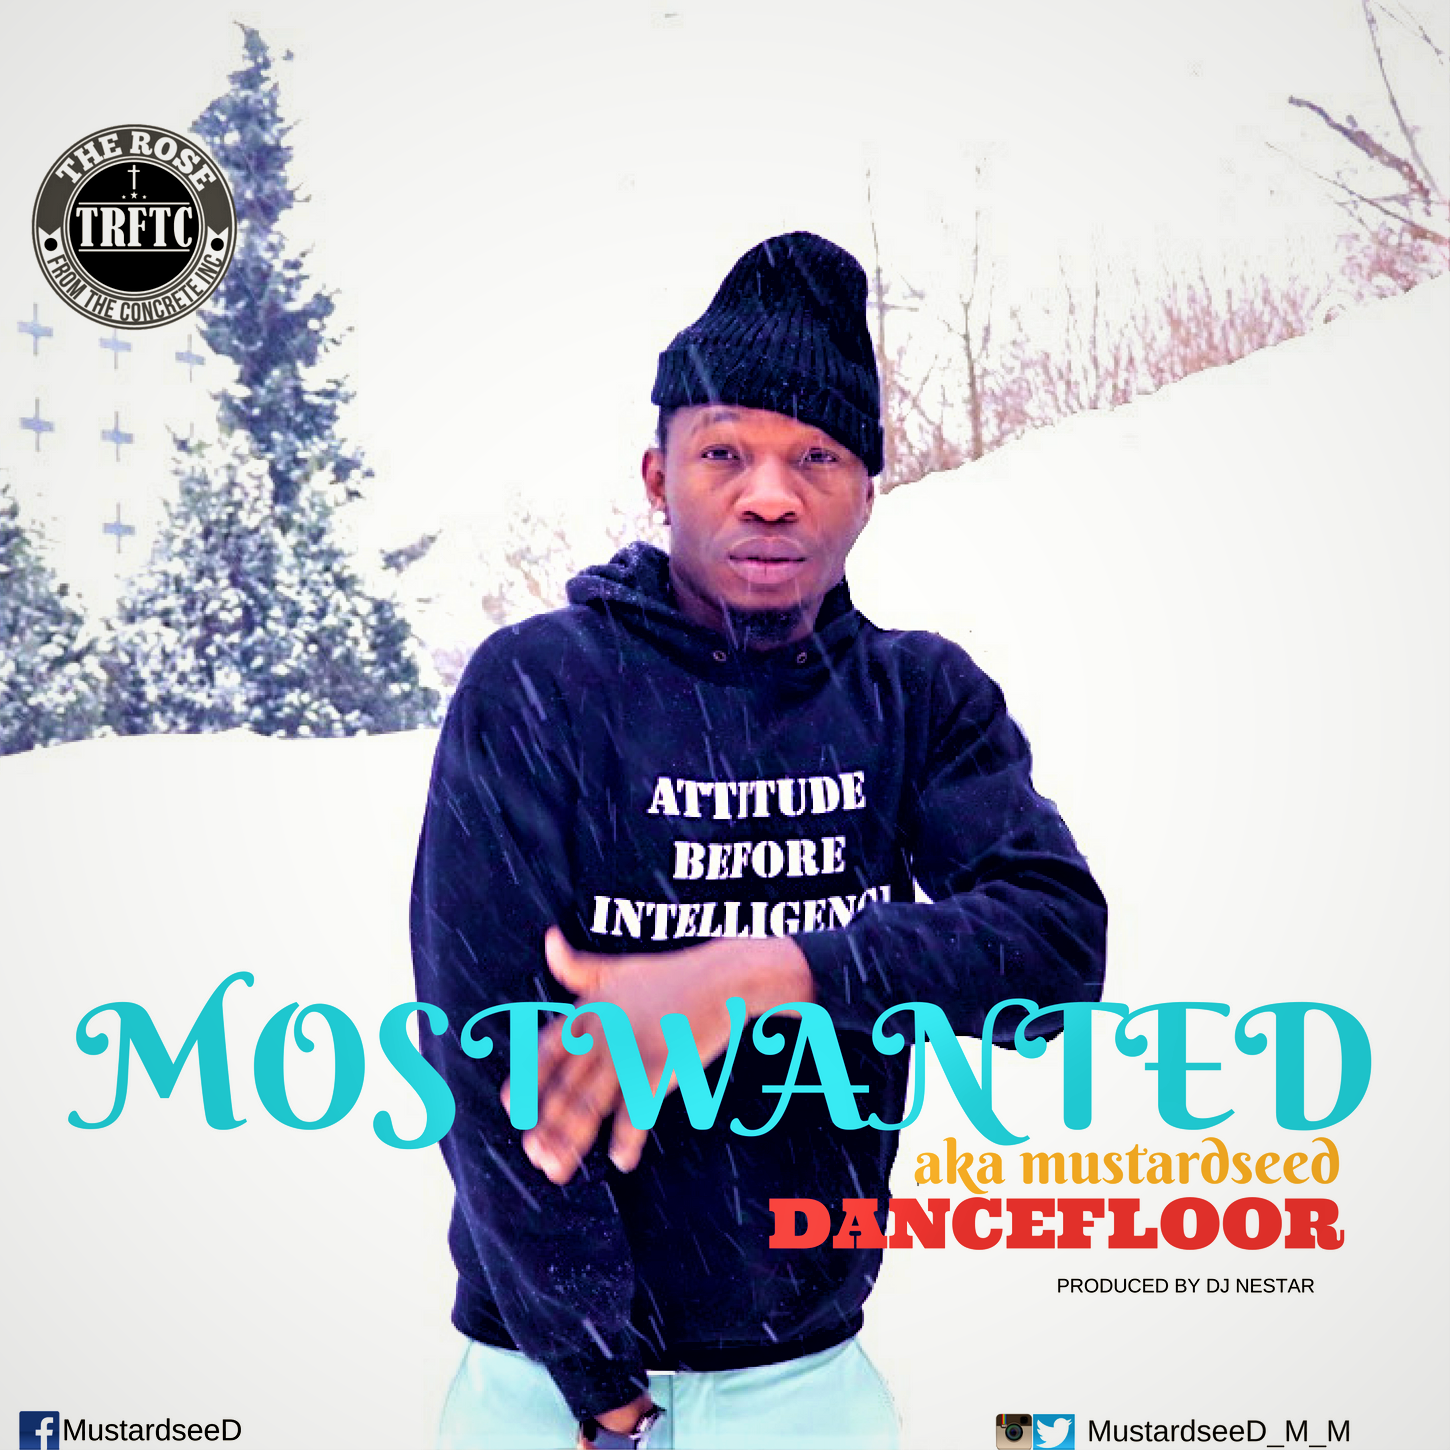 VIDEO: Mostwanted – Dancefloor